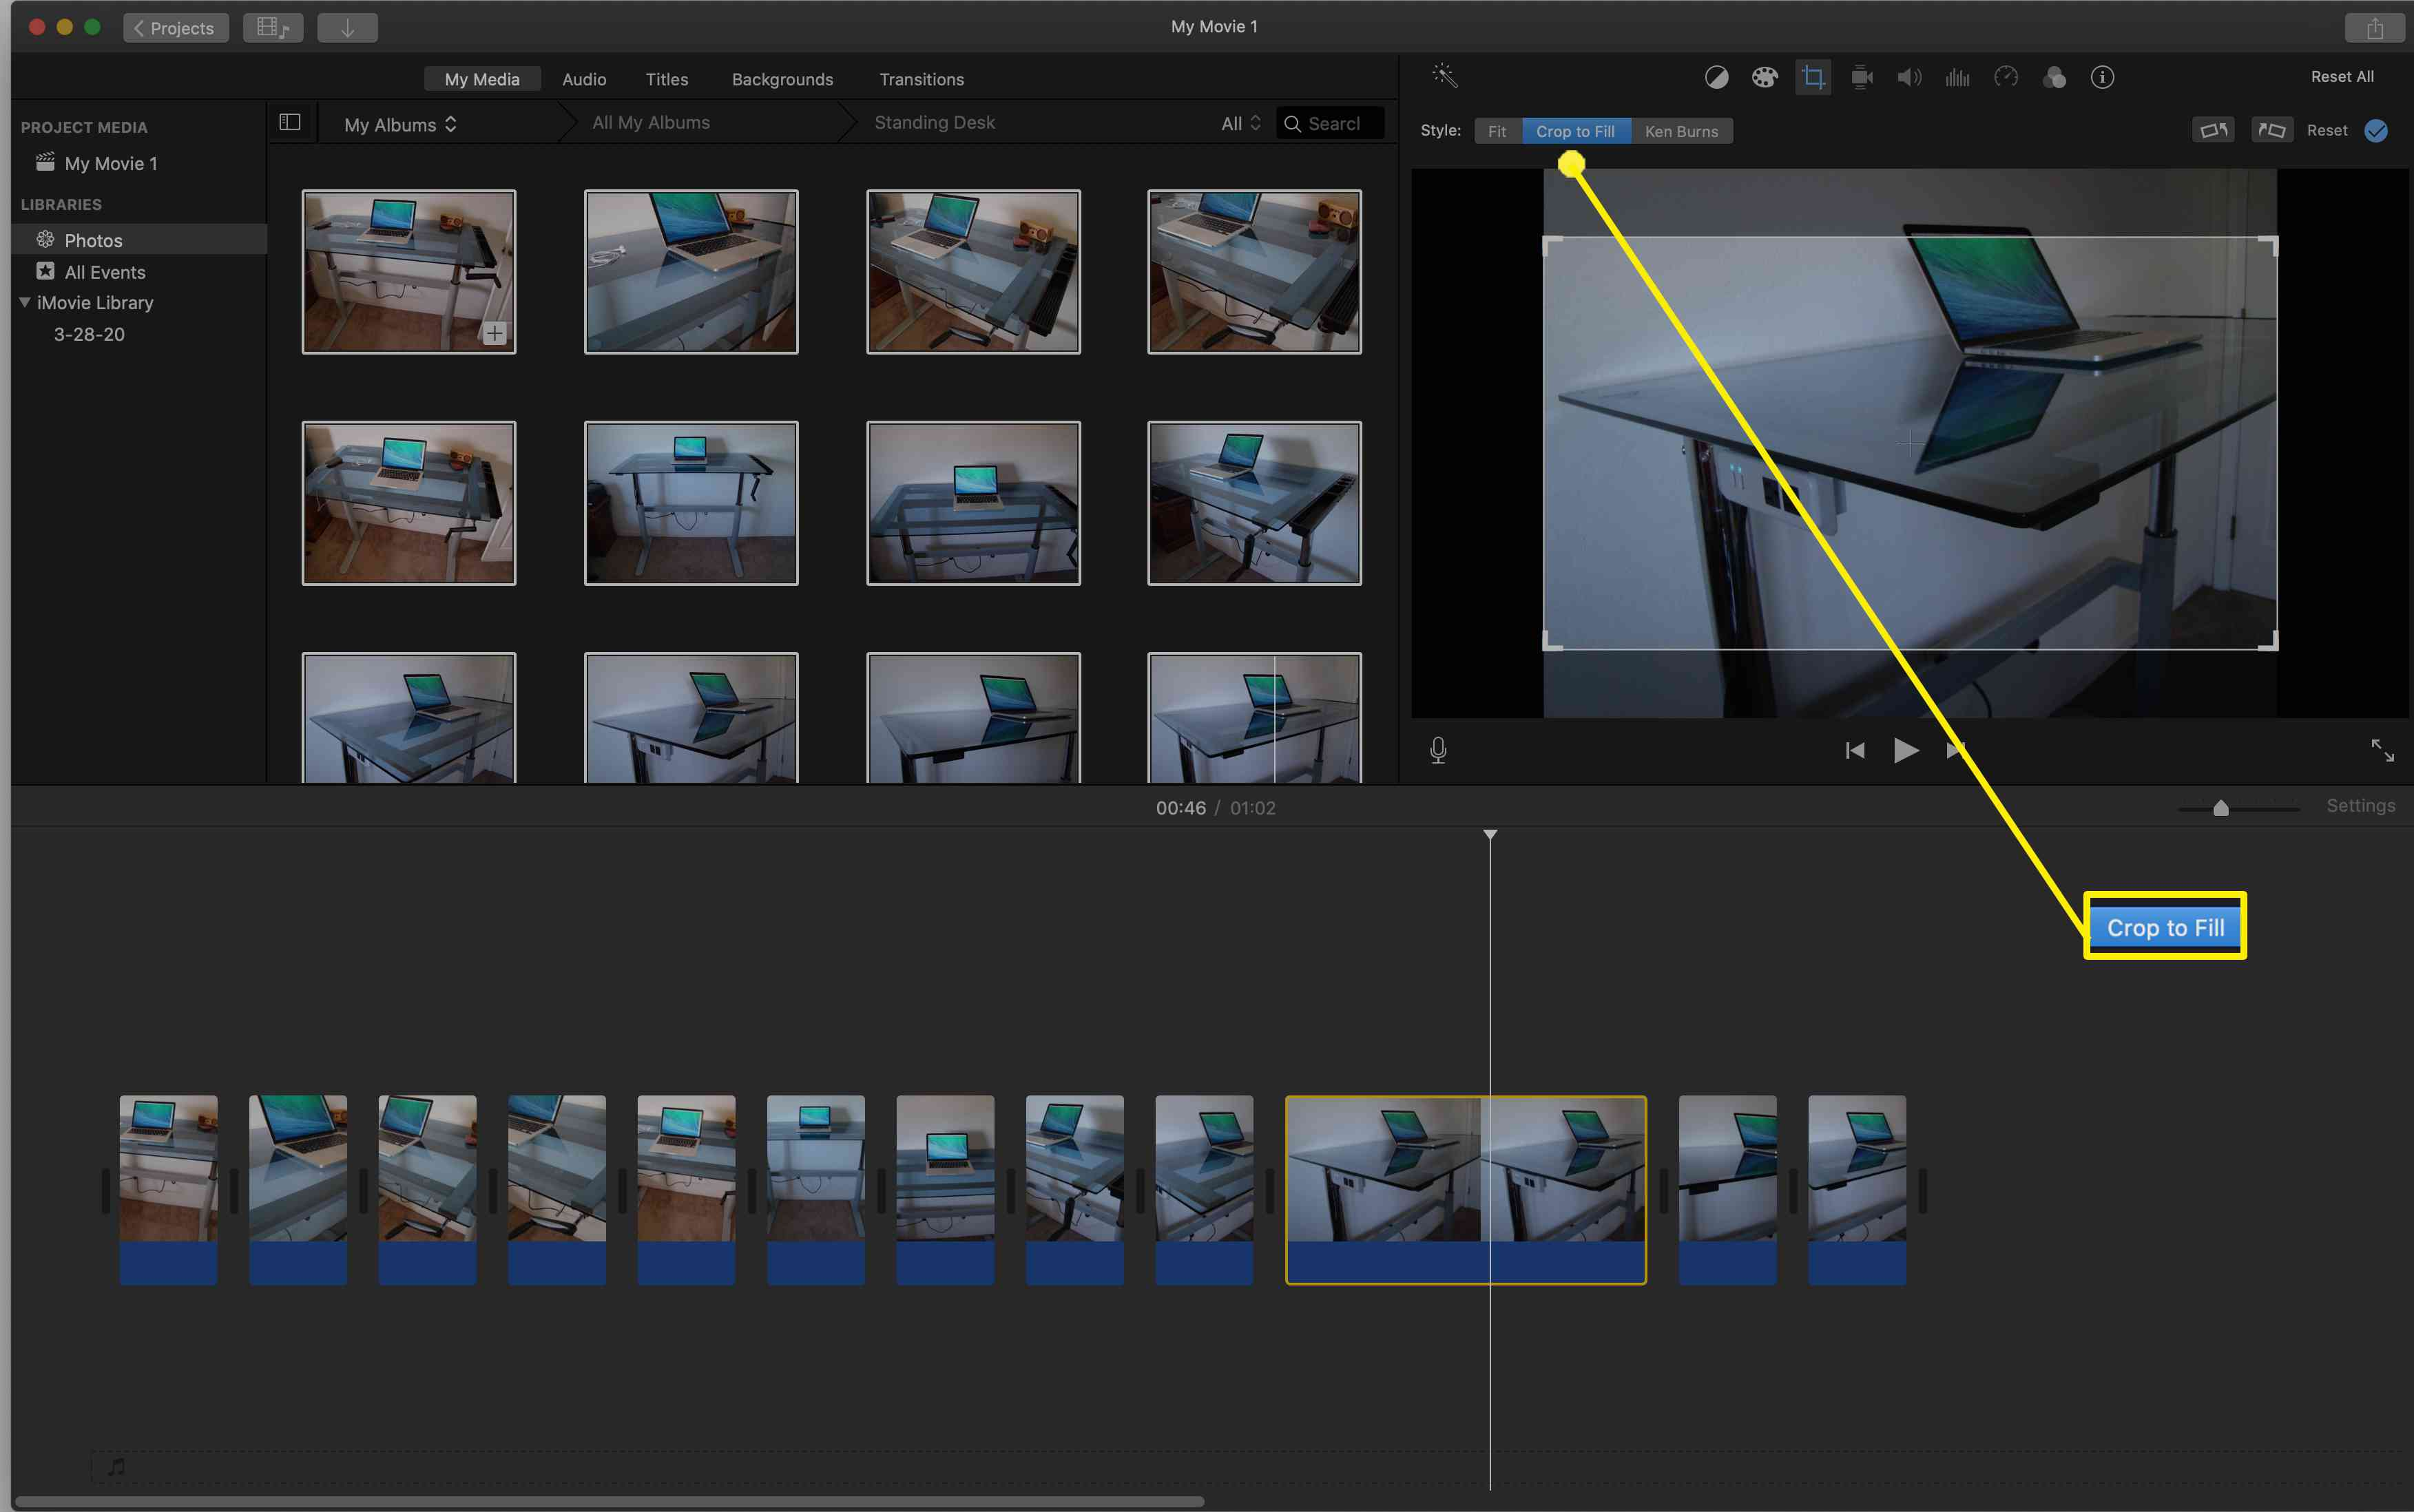 If you want a photo to fill up the full screen in iMovie or if you want to focus on a specific part of the picture, use the Crop to Fit setting.